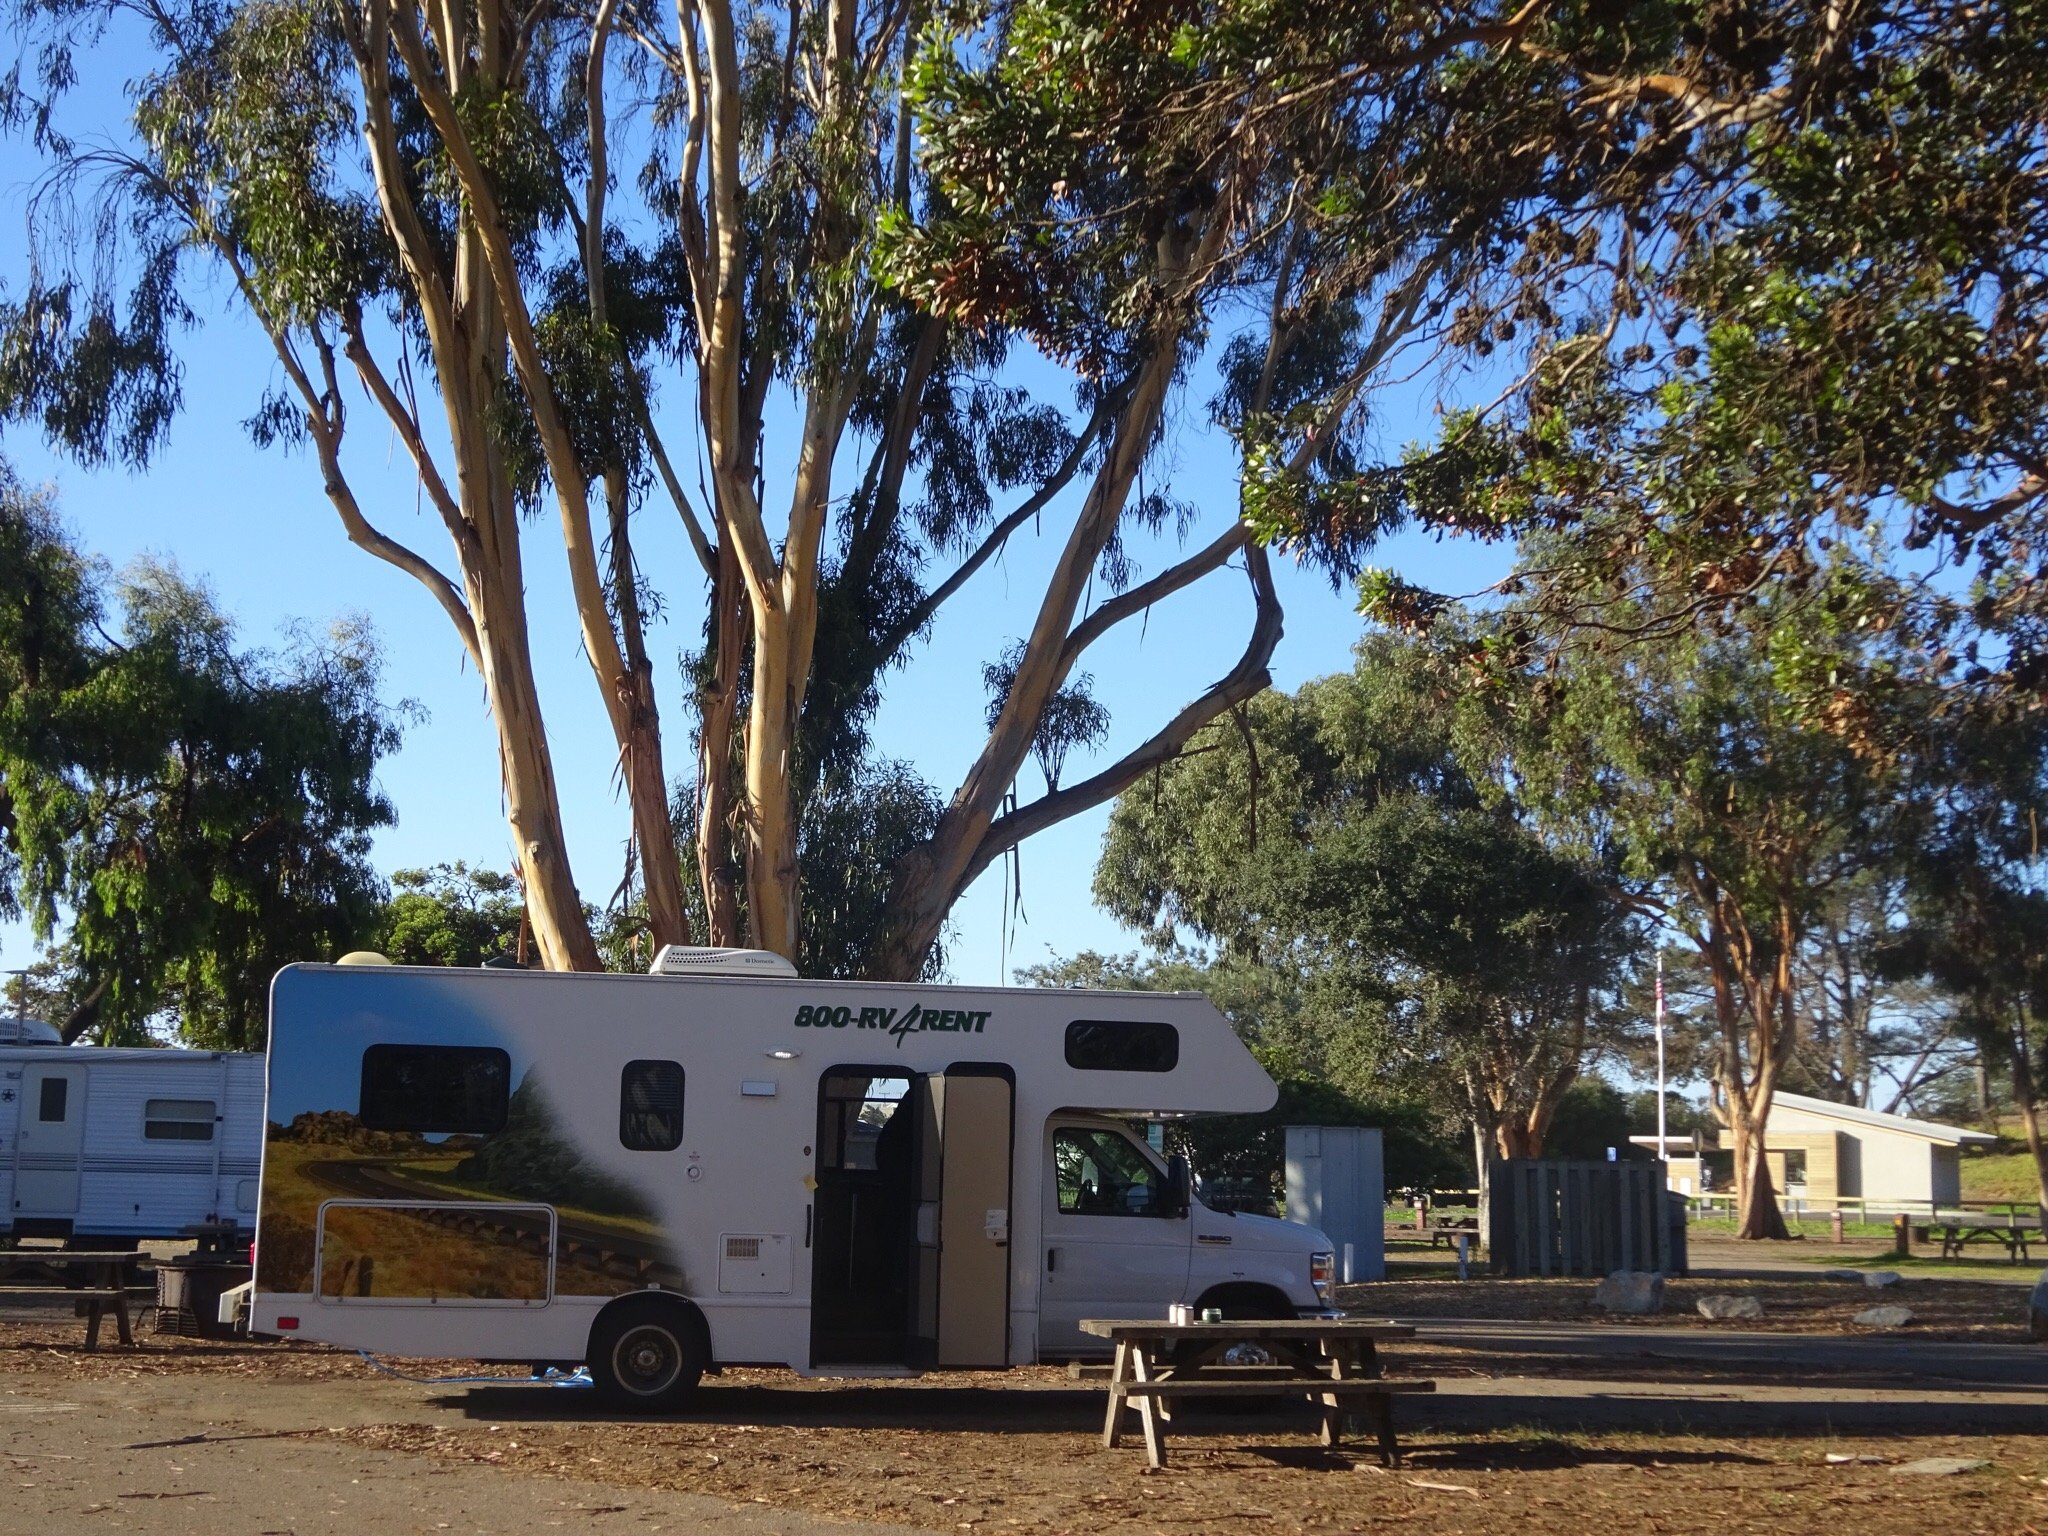 Pismo State Beach Oceano Campground